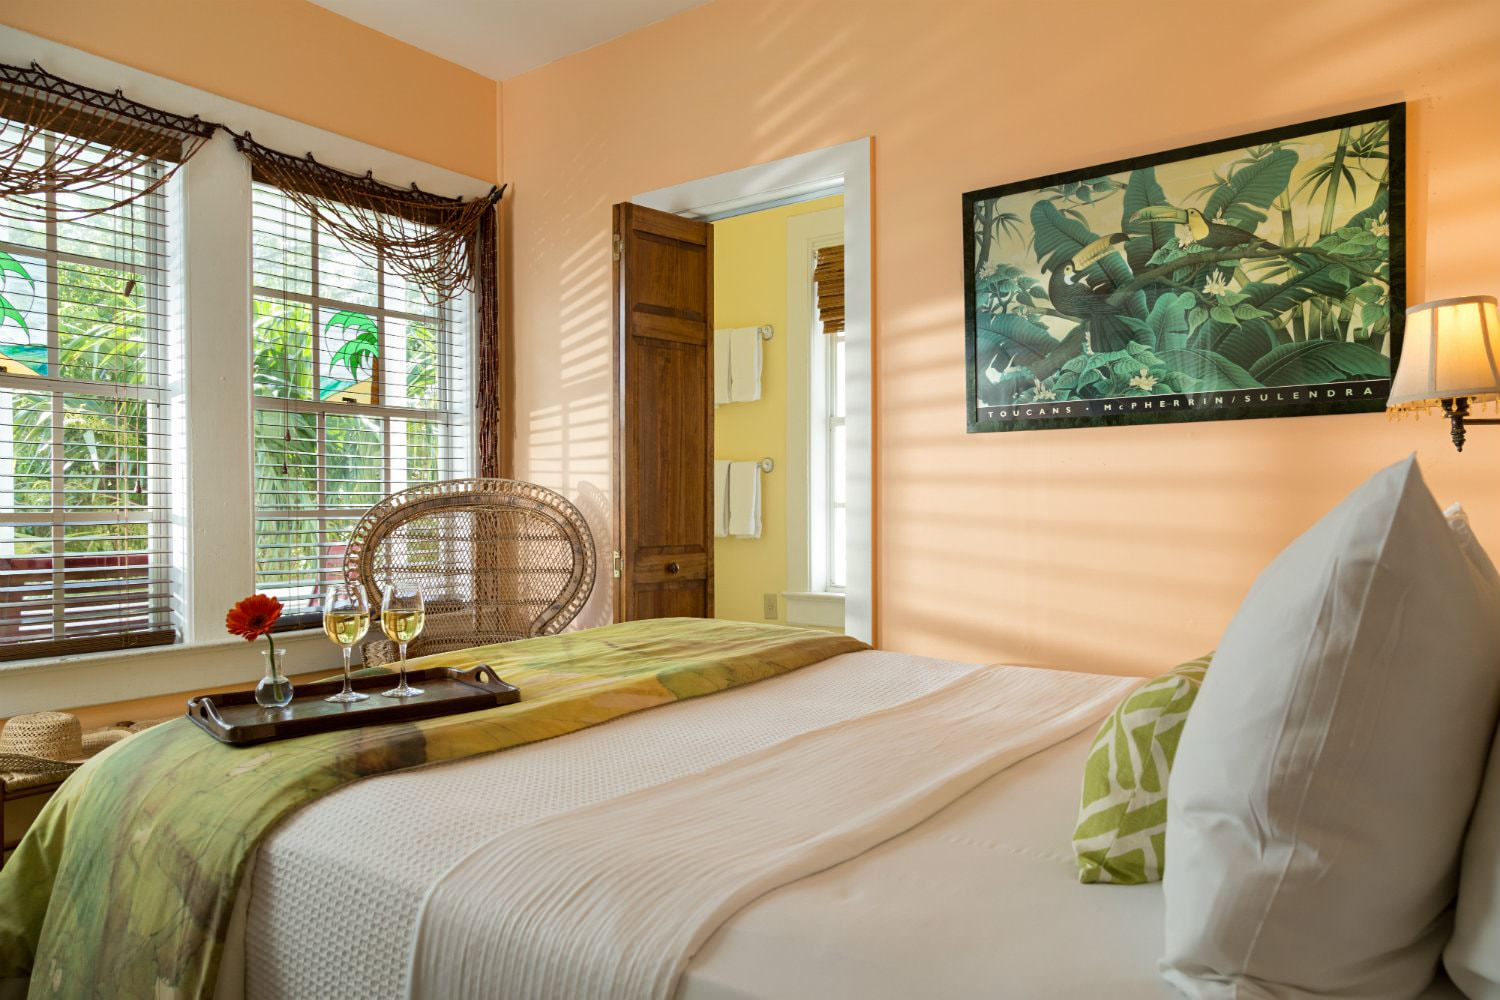 tropical decorations on bed tropical home decor ideas.htm affordable florida keys bed and breakfast accommodations in key west  florida keys bed and breakfast